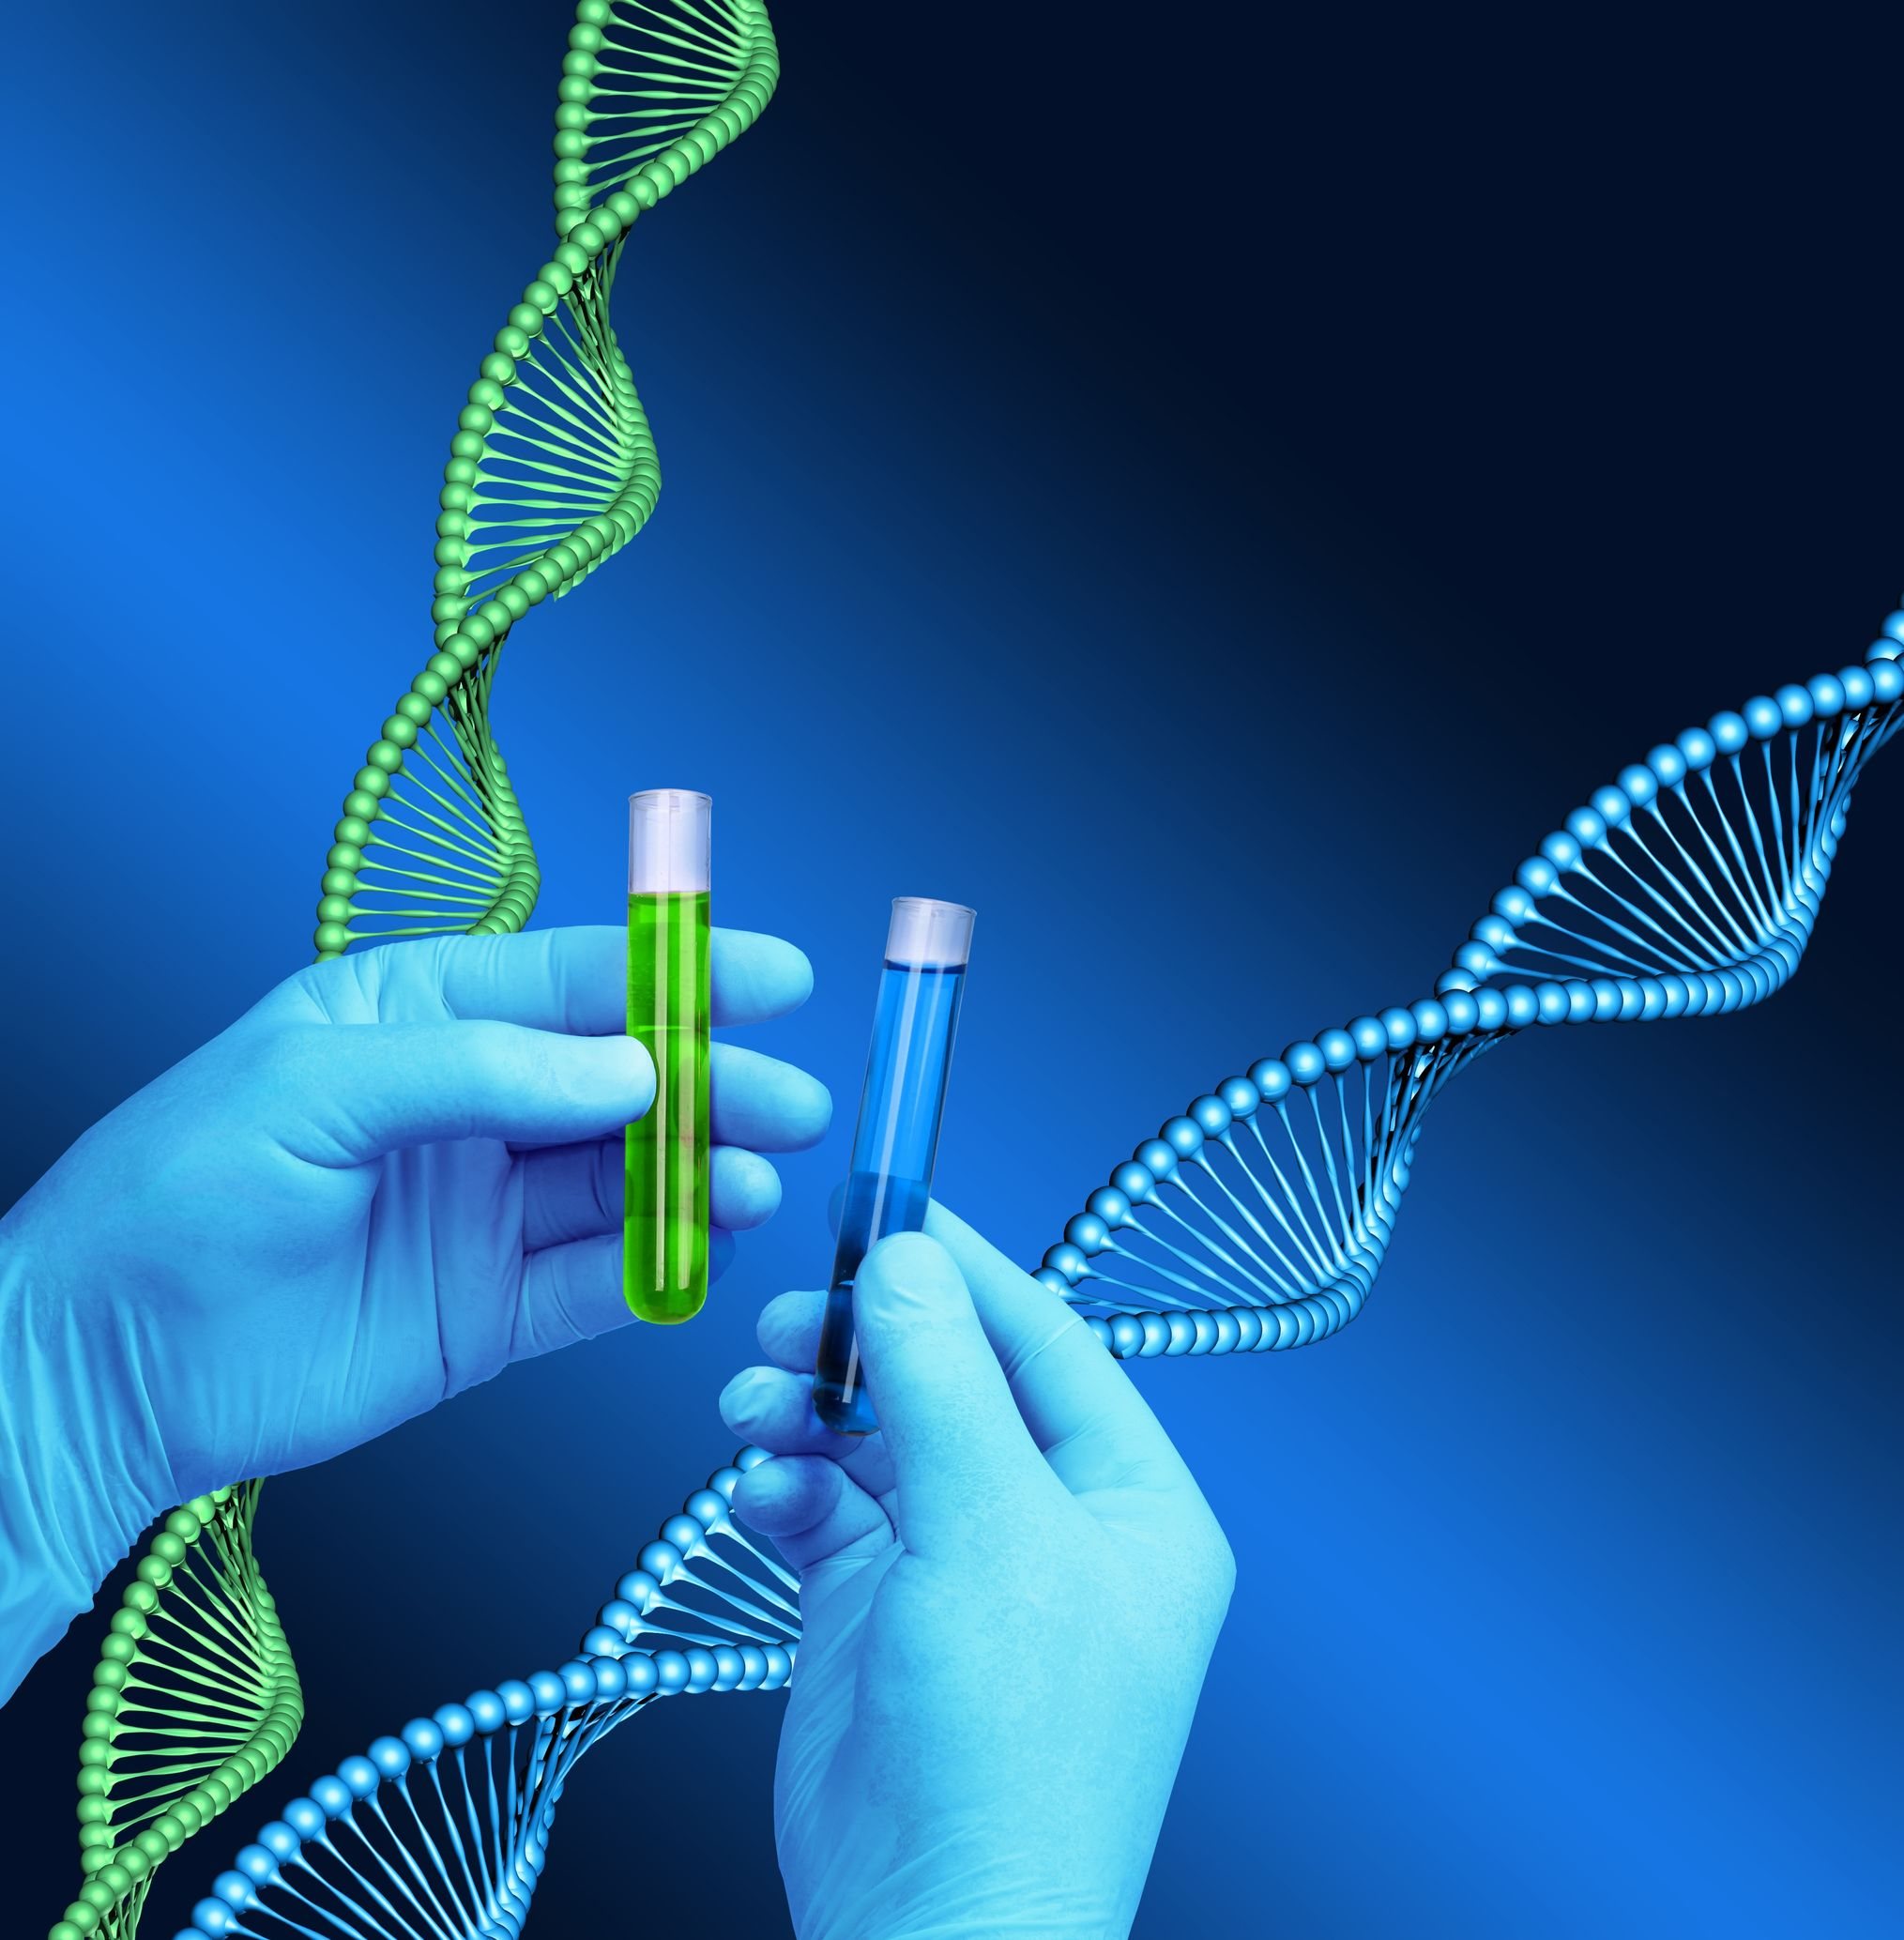 the biology of the genetics and the research of the genetic engineering Understanding genetic engineering: basic biology to understand how genetic engineering works, there are a few key biology concepts that must be understood.